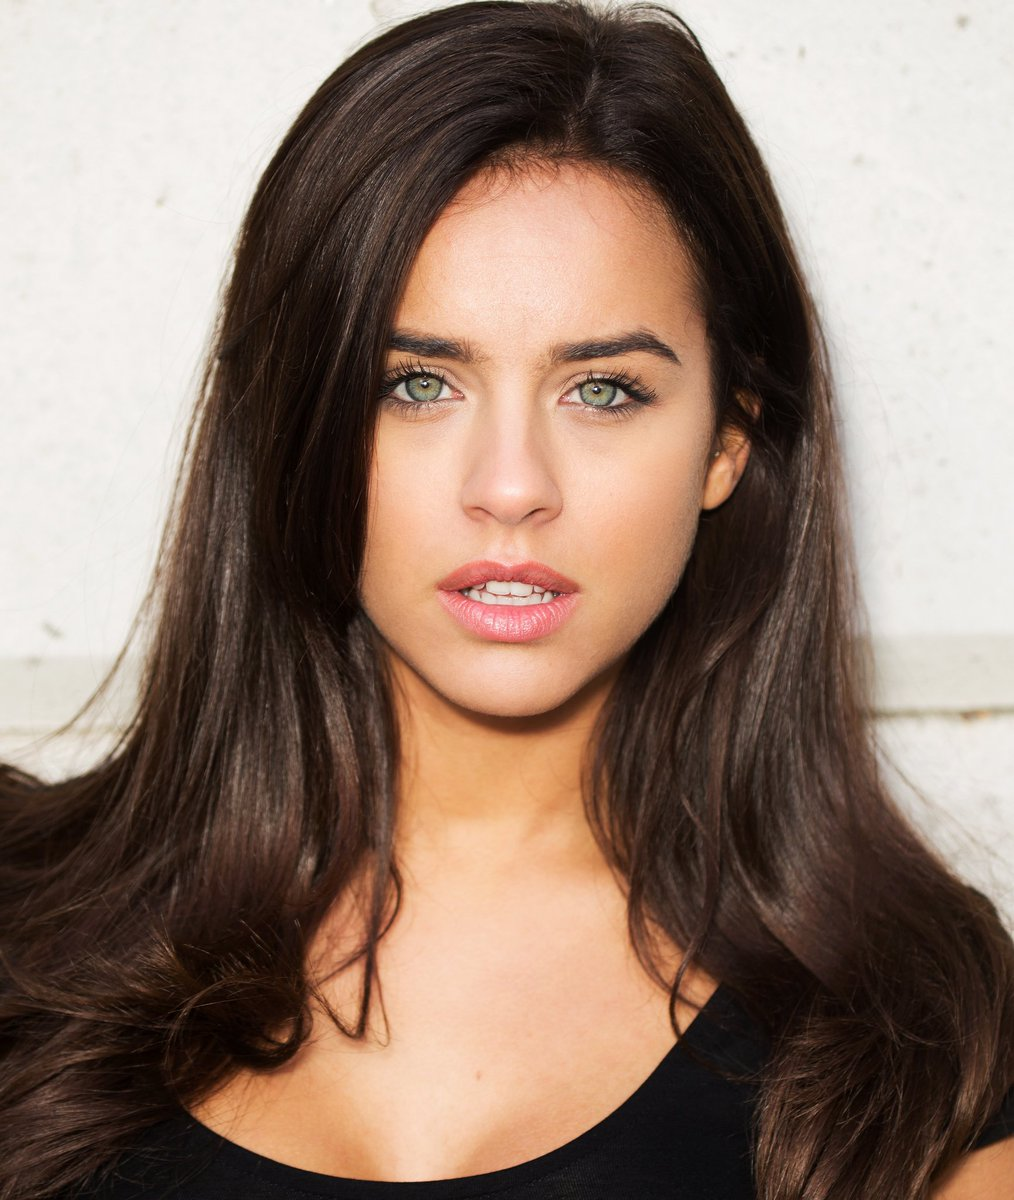 Twitter Georgia May Foote nudes (24 photos), Topless, Is a cute, Instagram, lingerie 2020